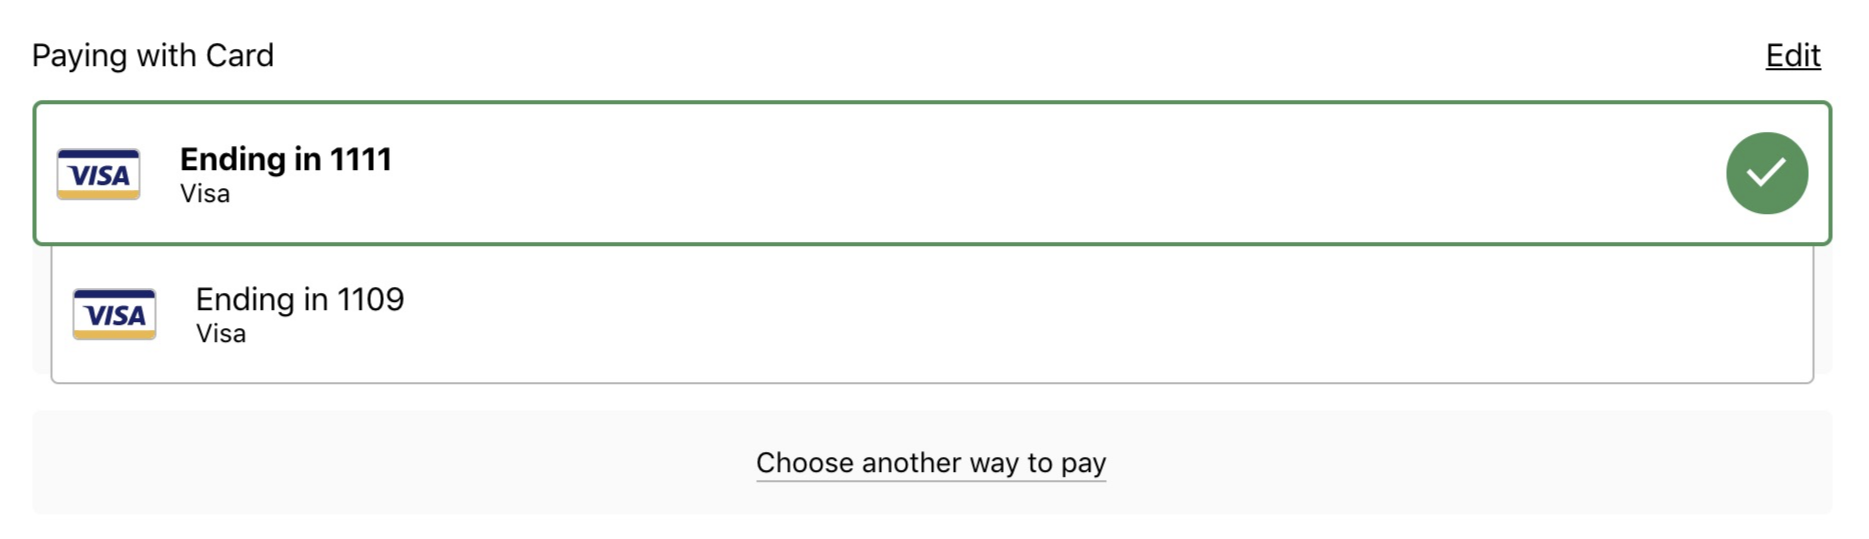 File Check Out Card how can i change my payment method? - smarterqueue help center